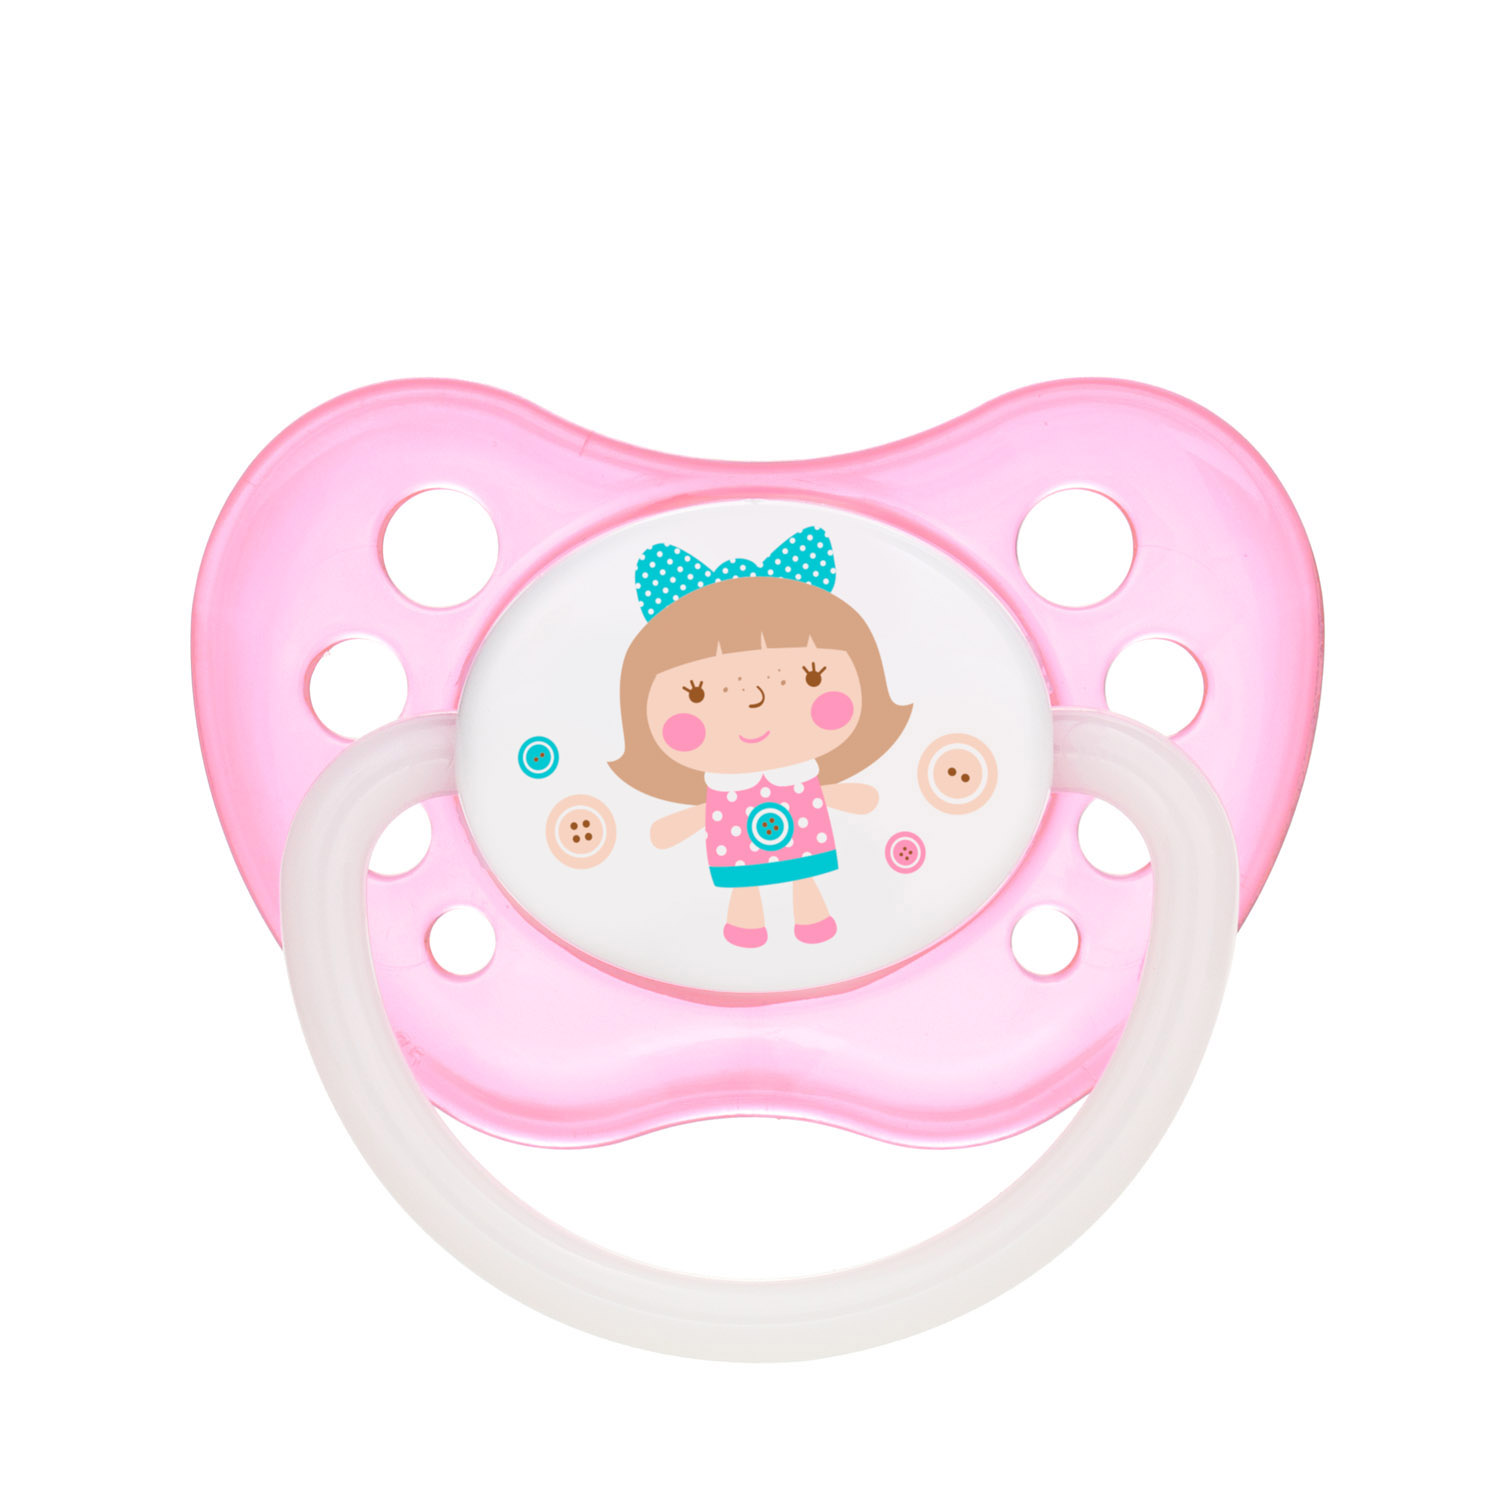 Canpol babies Silicone Orthodontic Soother 0-6m TOYS pink